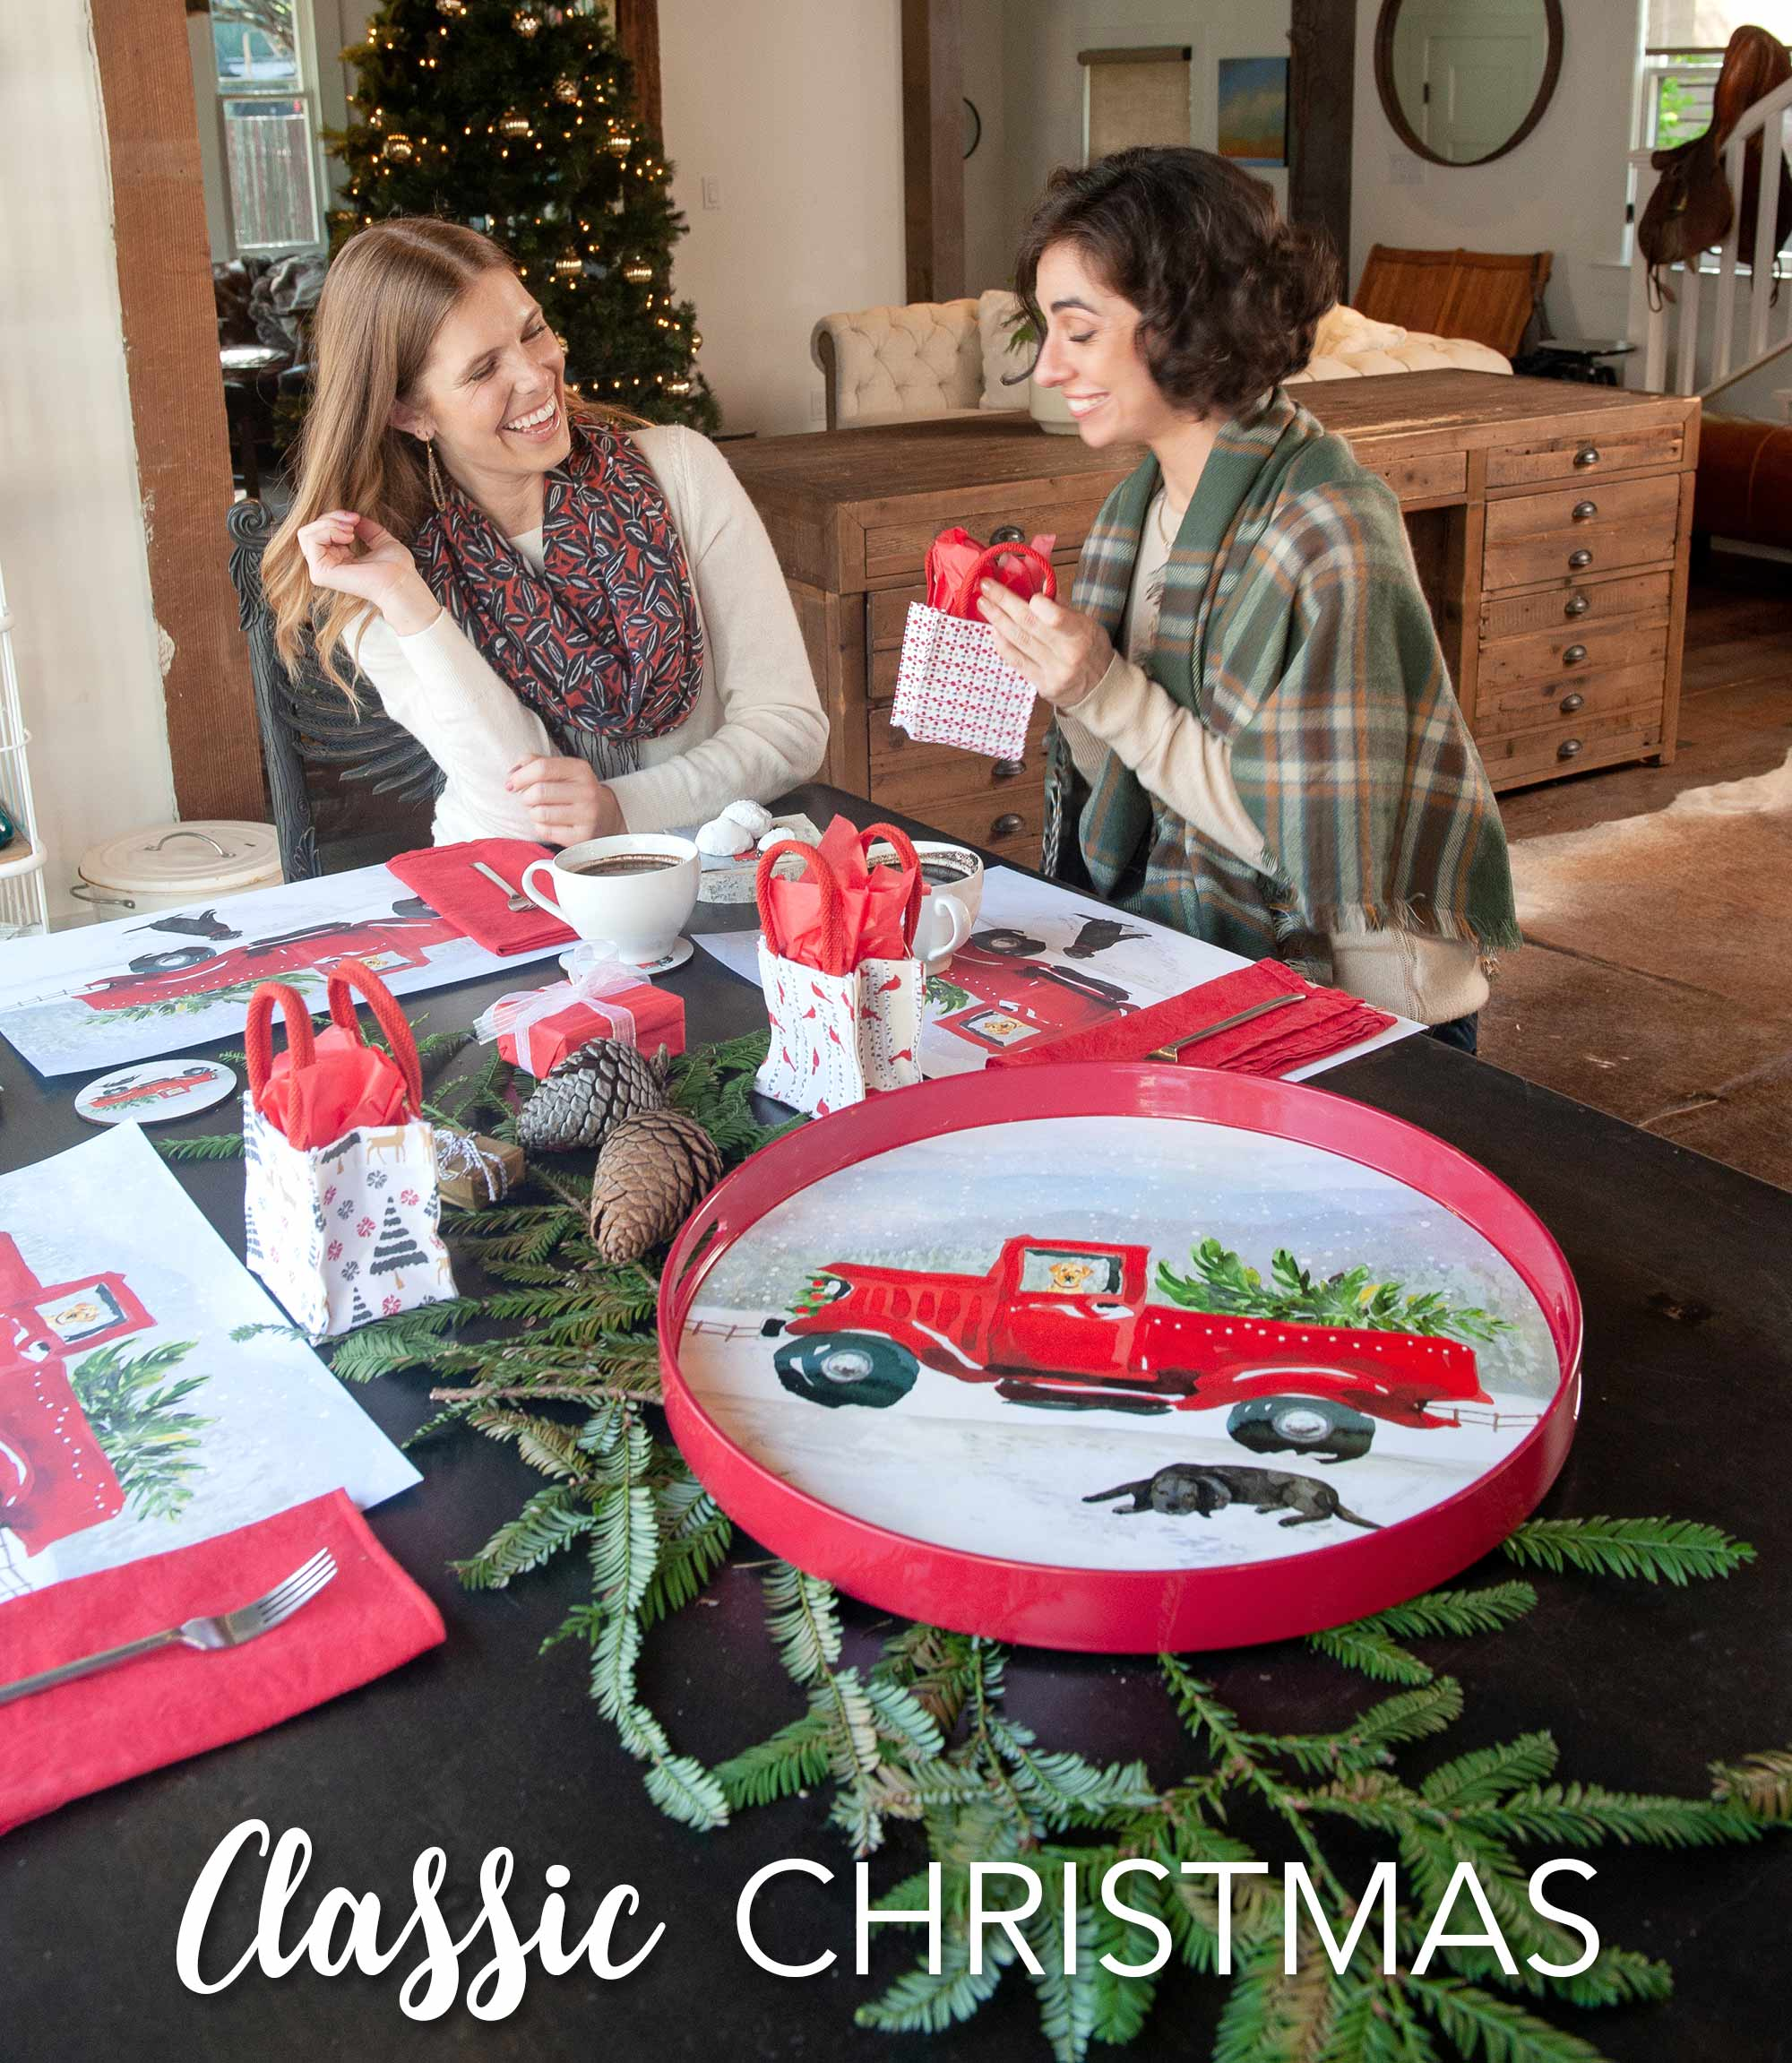 Classic Christmas holiday home decor - vintage red truck tray and placemats